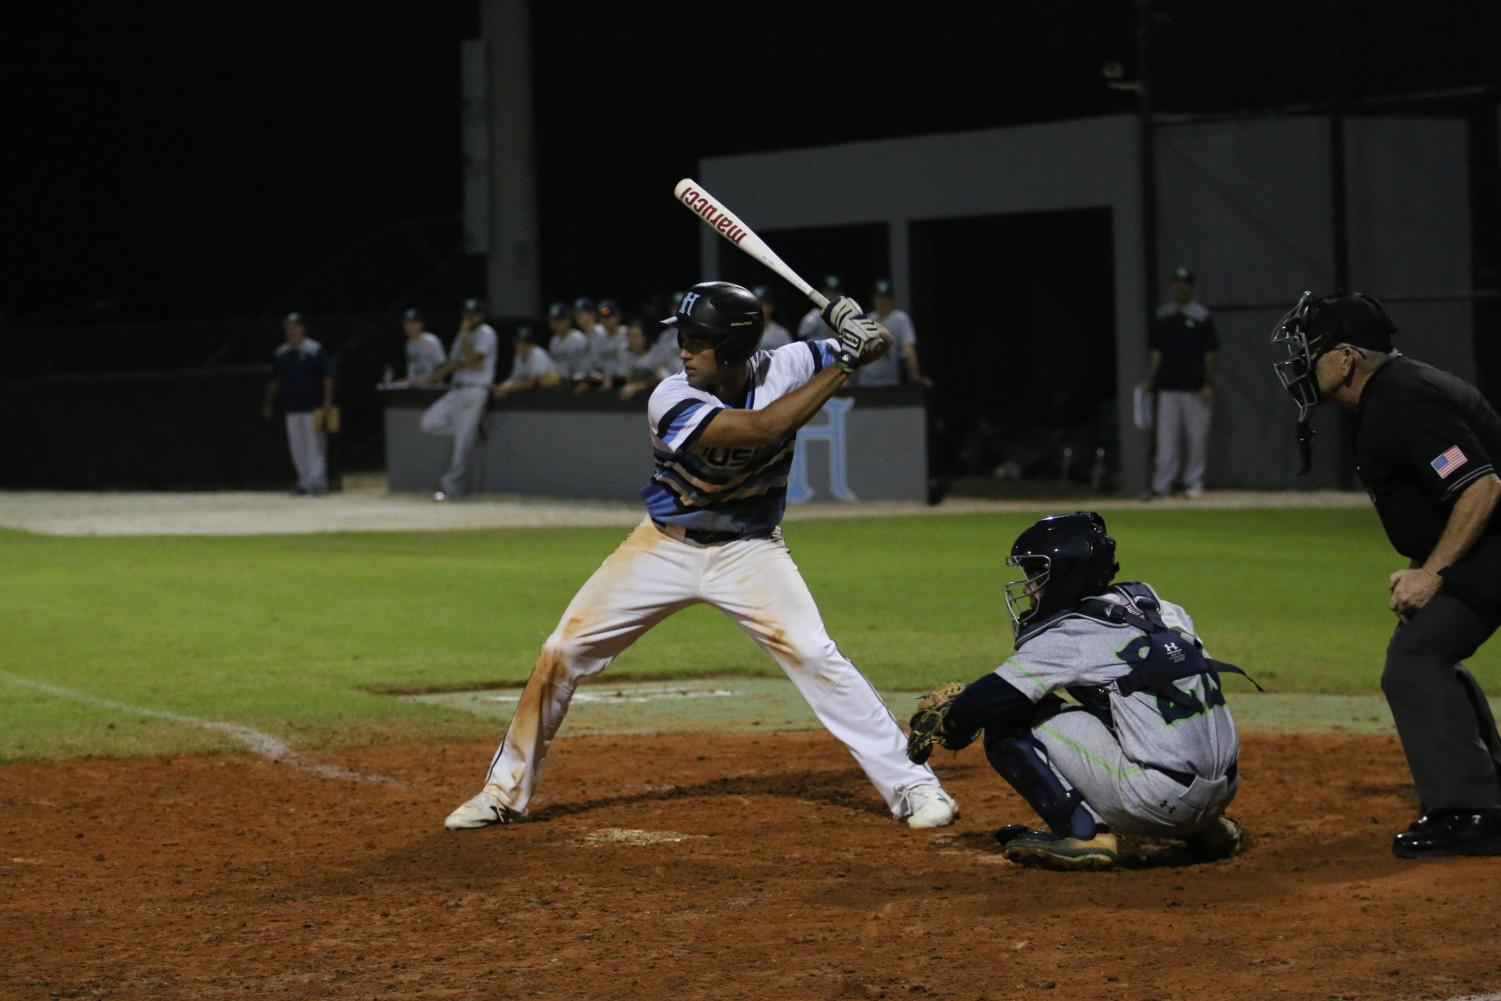 Hagerty outfielder Riley Greene was selected with the fifth overall pick in the 2019 MLB Draft by the Detroit Tigers on June 3, 2019. He will receive a $6.2 million signing bonus upon signing with the team.